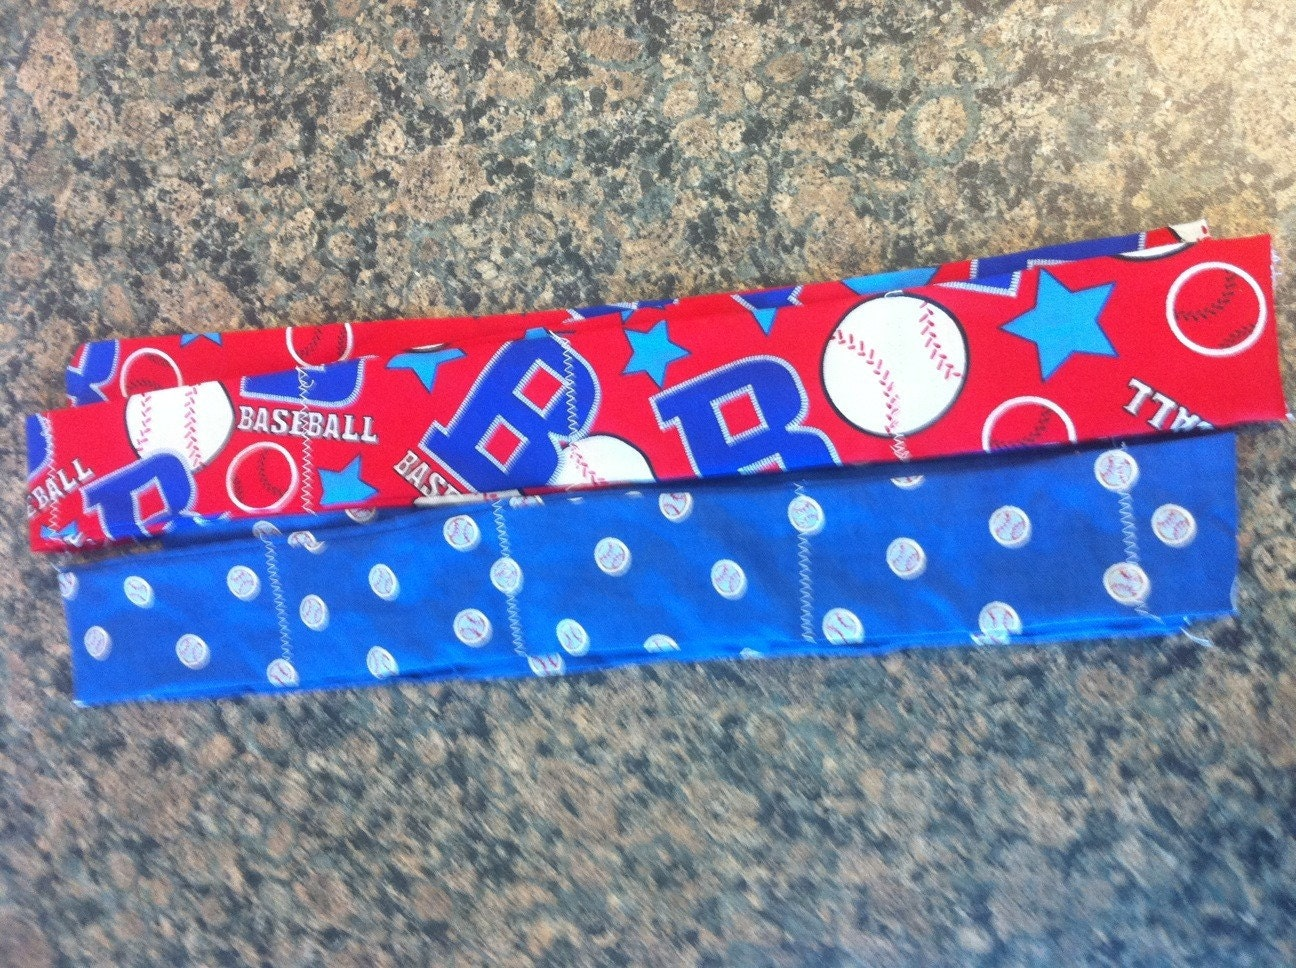 Lot of 2 Baseball cool neck bands to benefit American Cancer Society